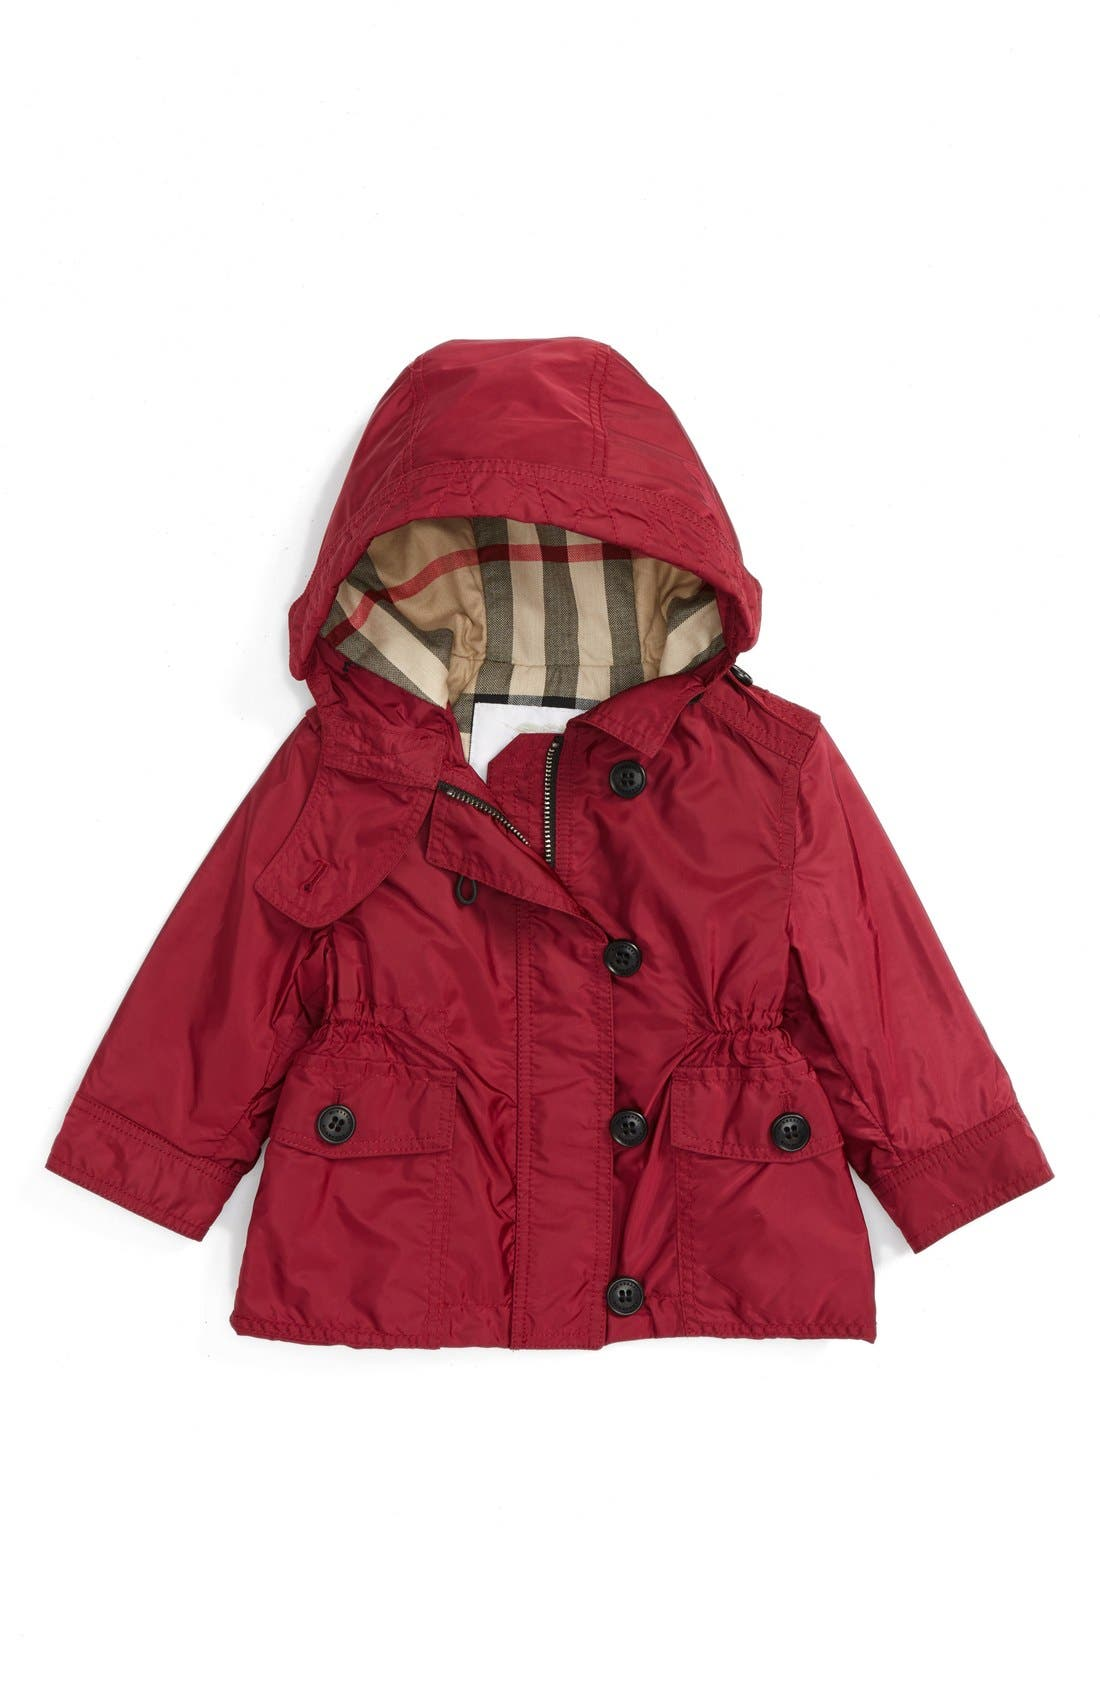 Main Image - Burberry 'Karen' Hooded Jacket (Baby Girls)